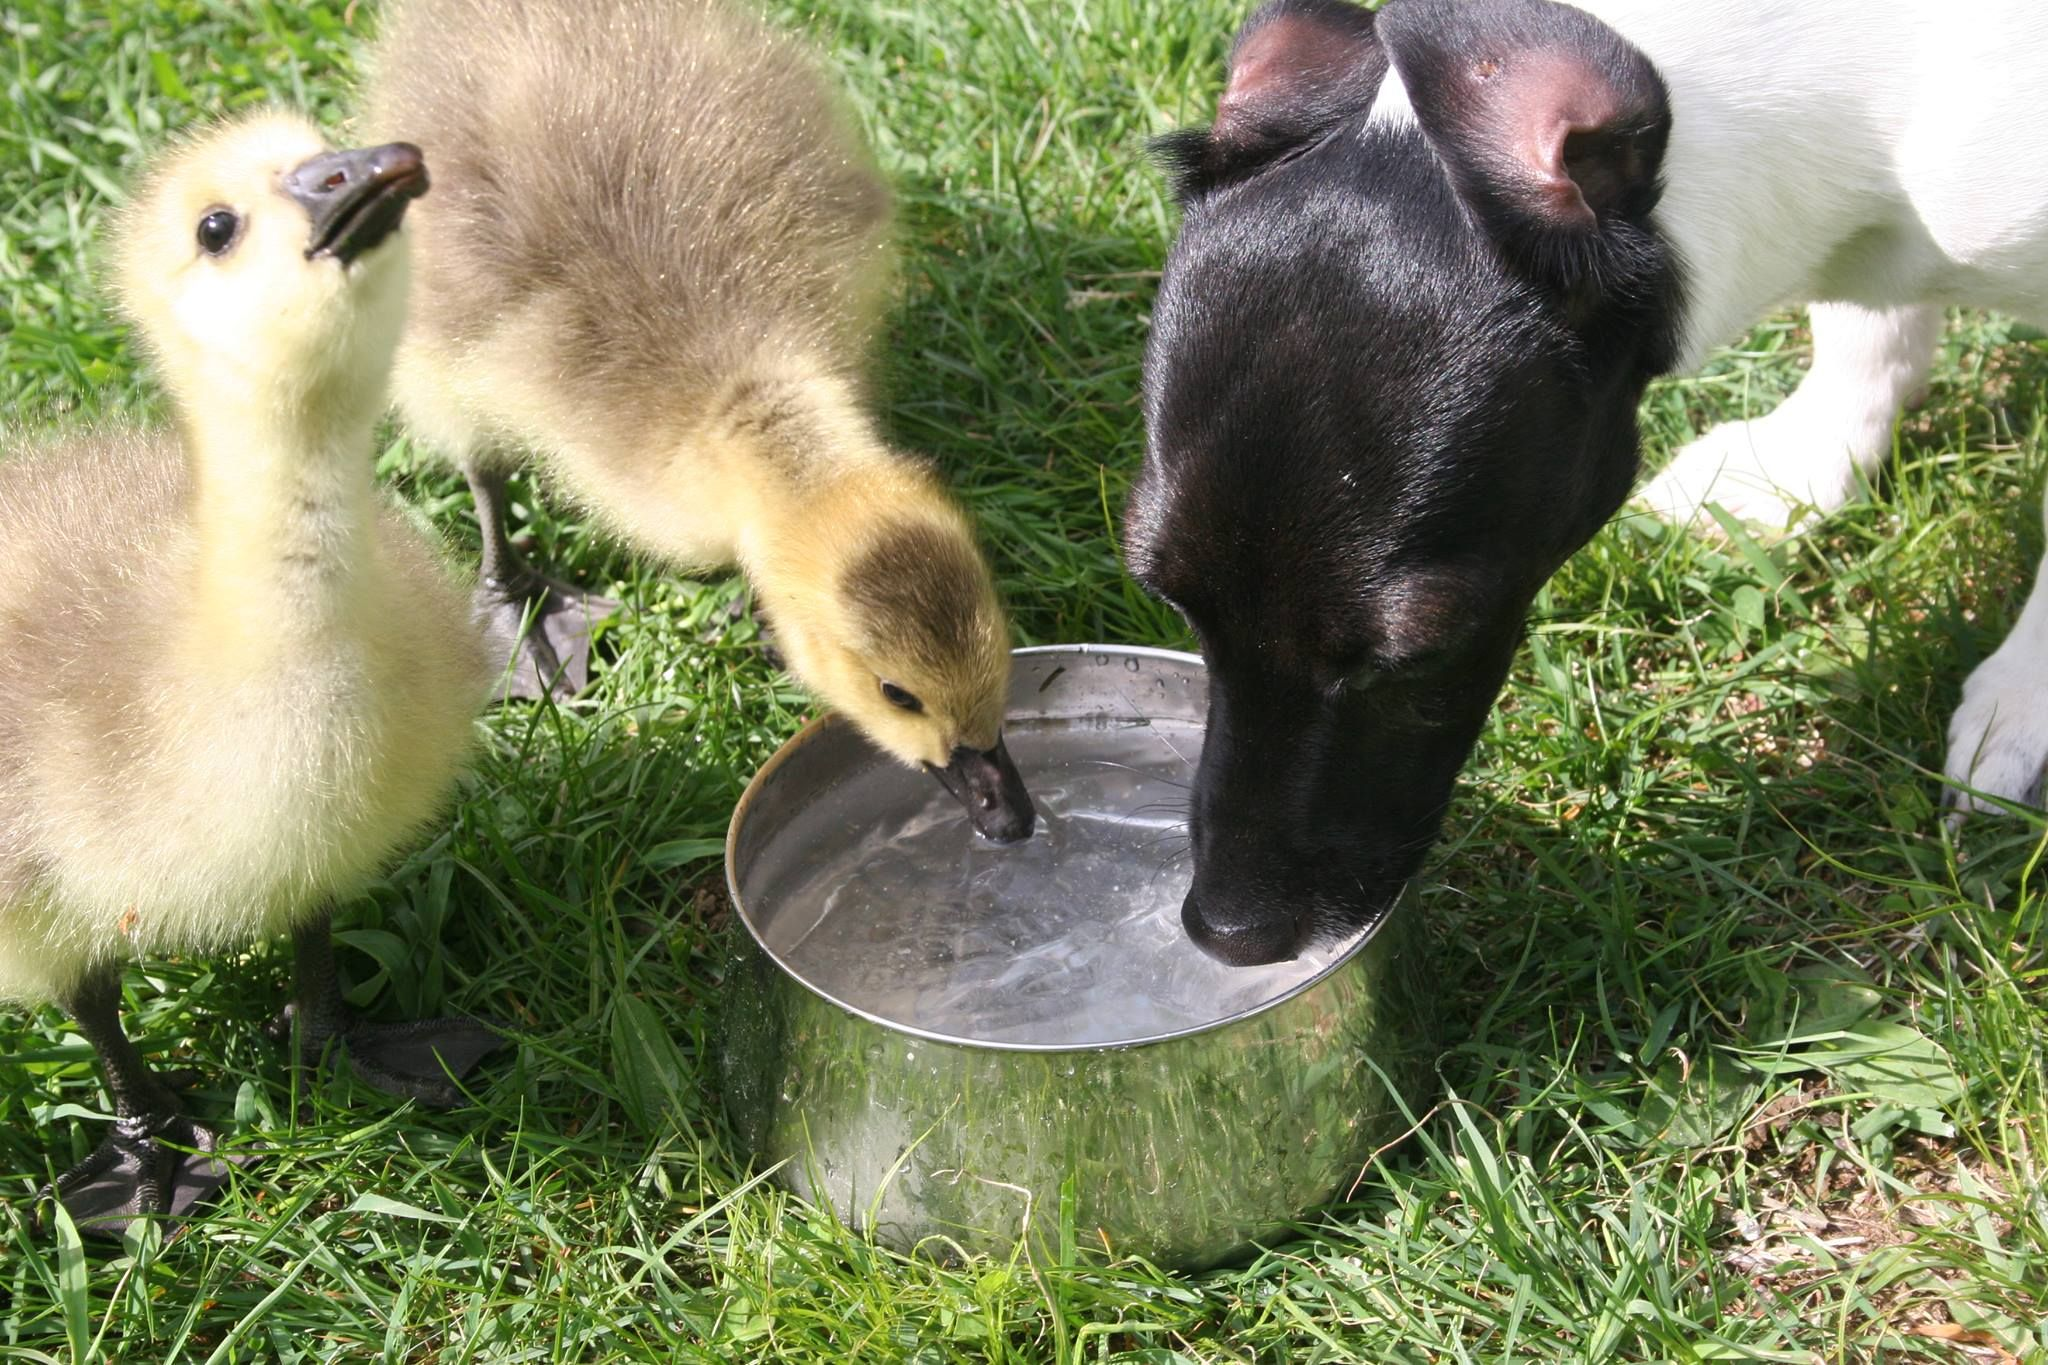 My girlfriend's dog Lucy drinking with the baby geese http://ift.tt/2kz9Bkc